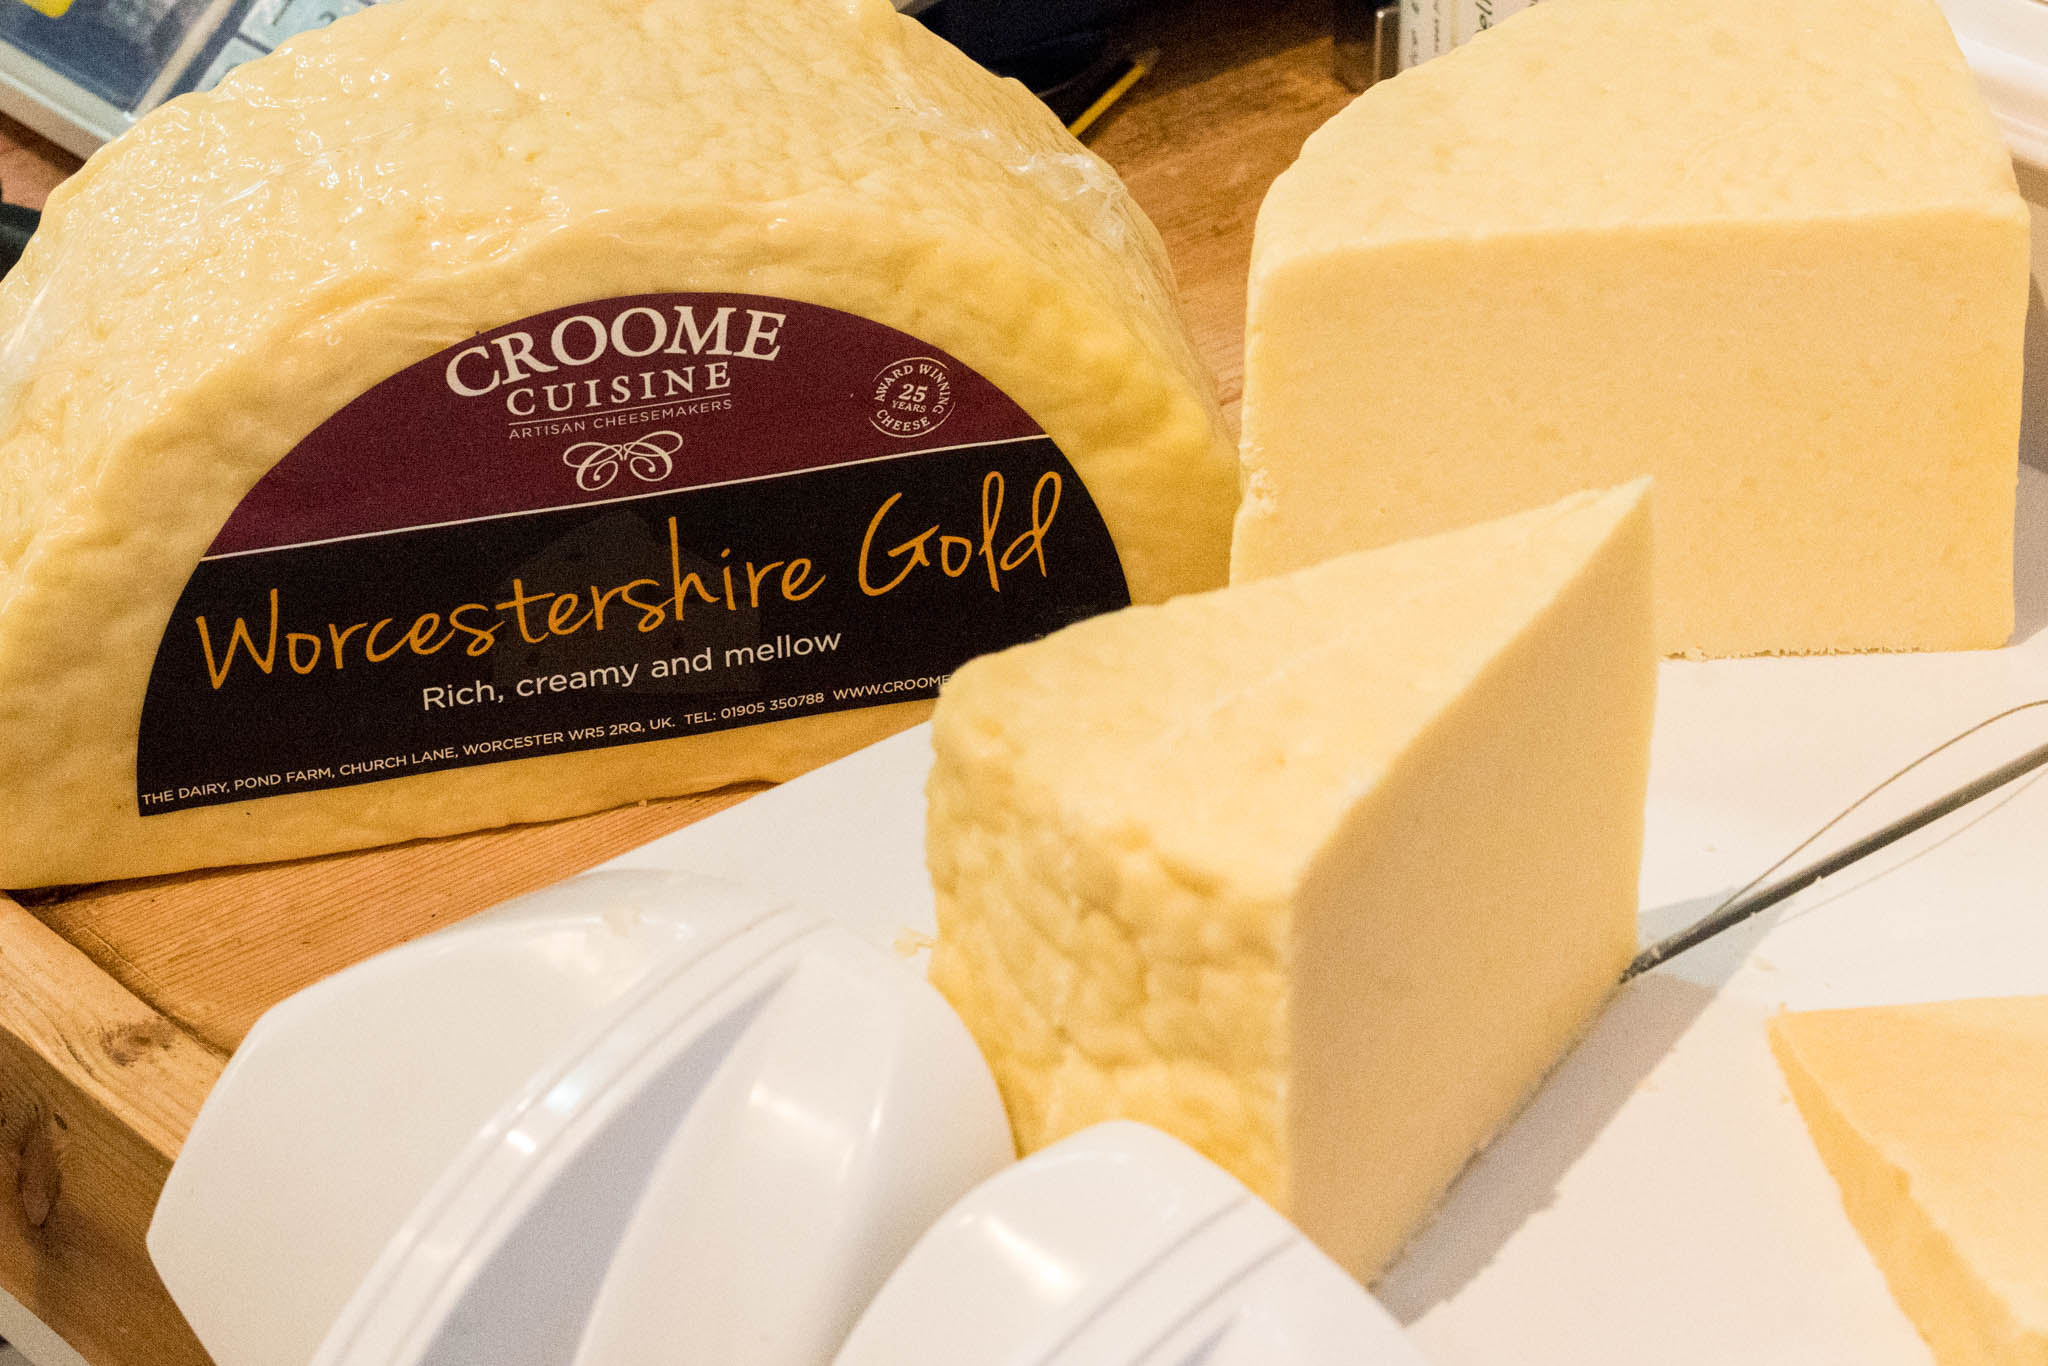 Croome Cuisine cheese